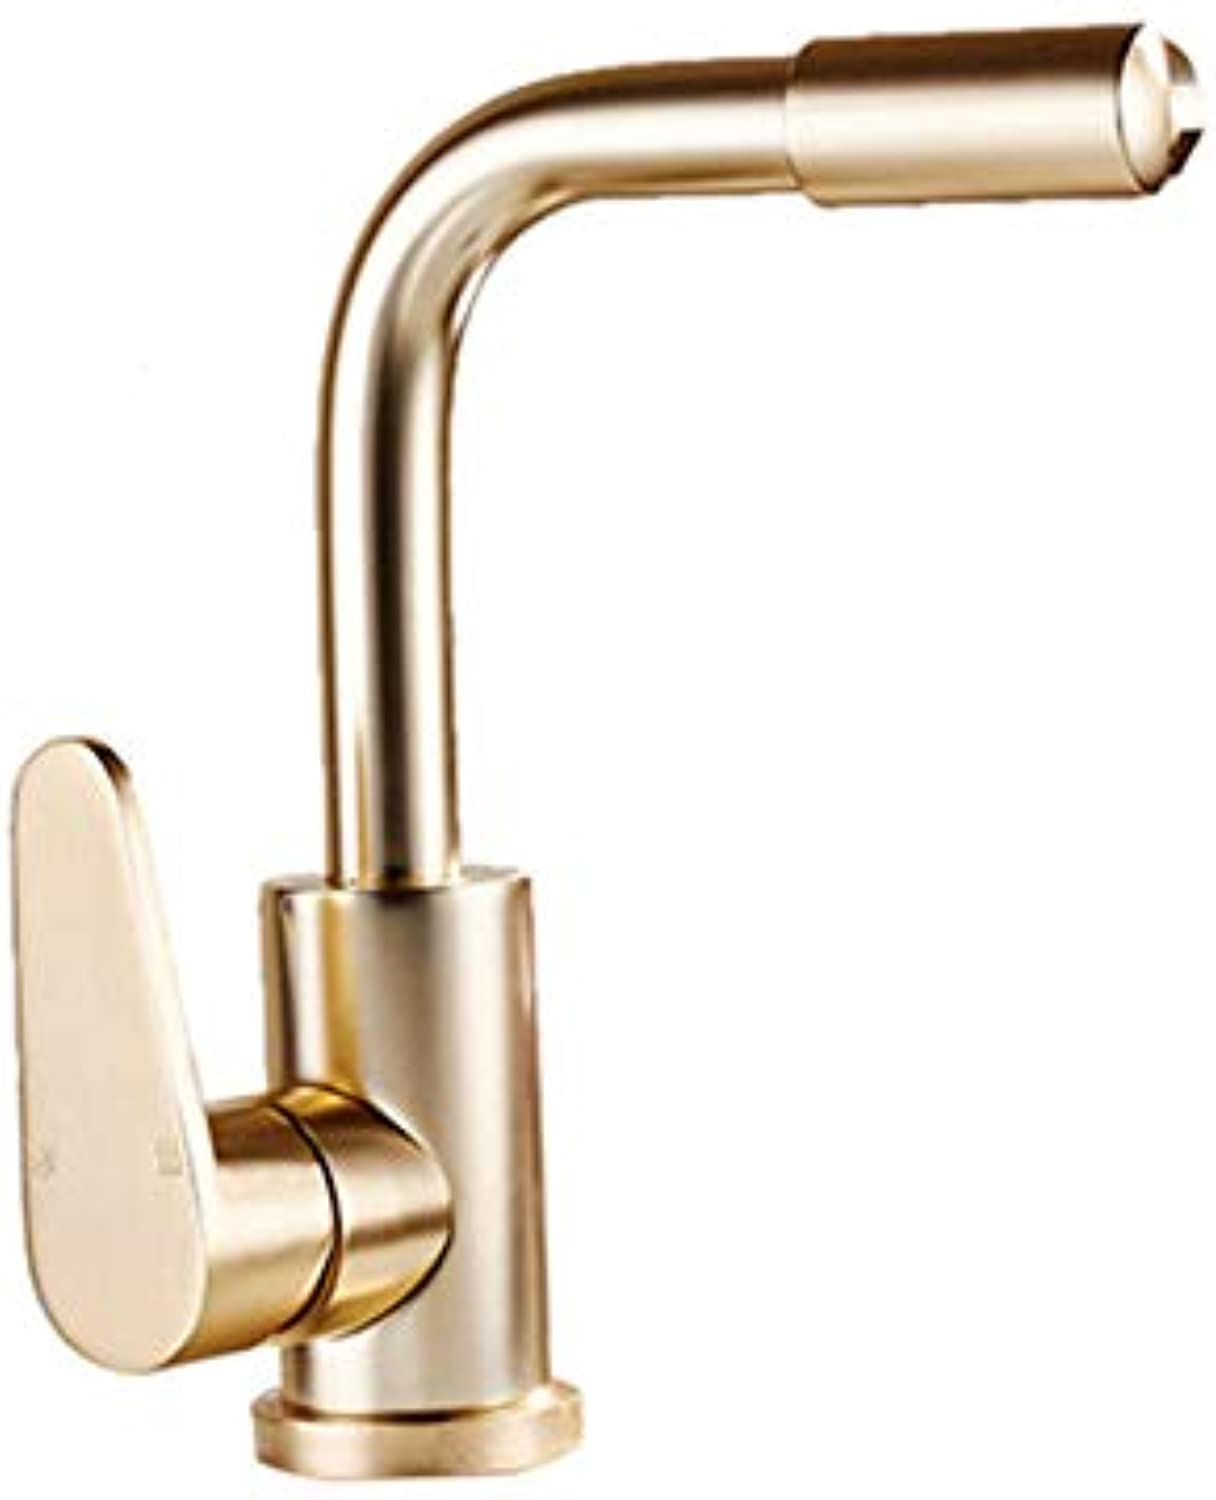 redOOY Taps Space Aluminum Earth Haojin Kitchen Faucet Sink Faucet Sink Hot And Cold Water Mixer